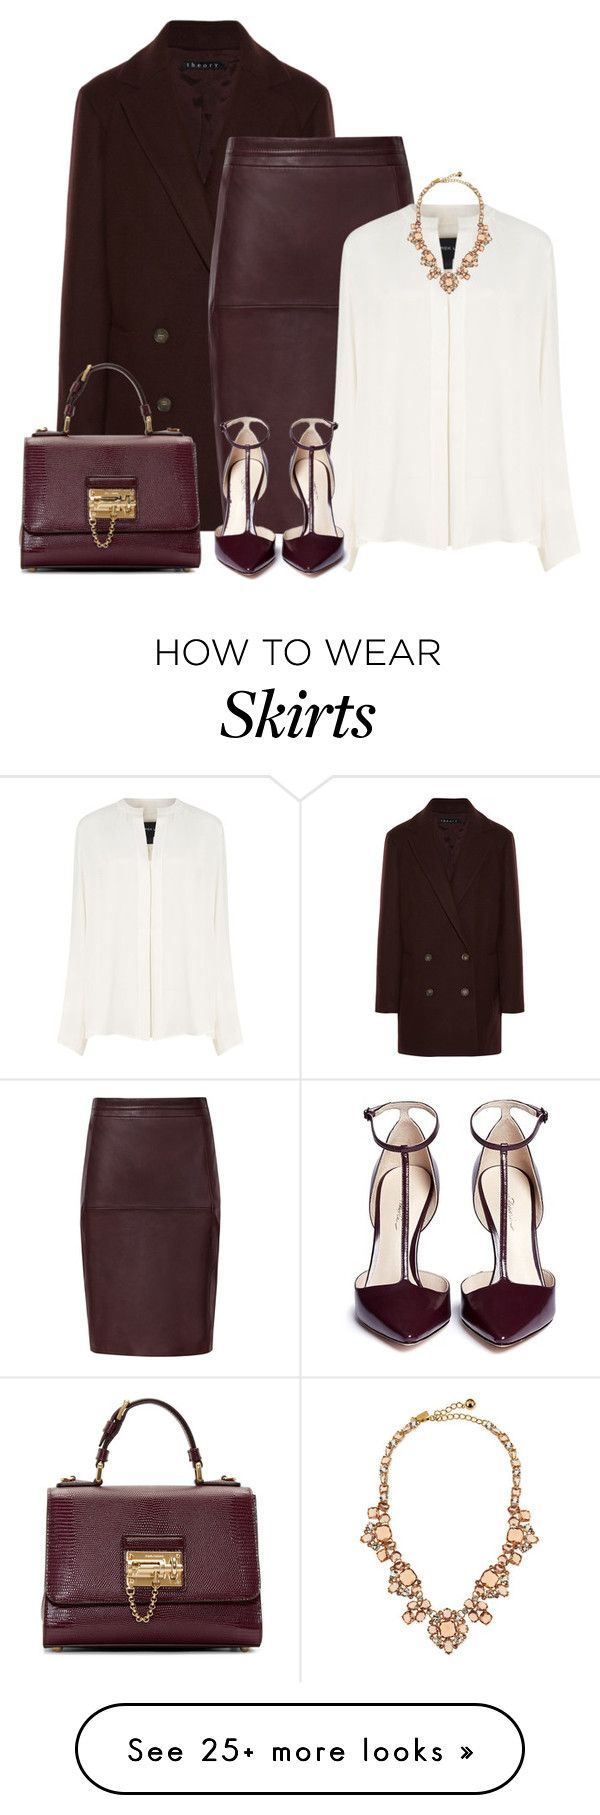 """""""Leather Skirt for Fall"""" by redchally on Polyvore featuring Theory, Derek Lam, Dolce&Gabbana, 3.1 Phillip Lim, Kate Spade and falloutfit"""